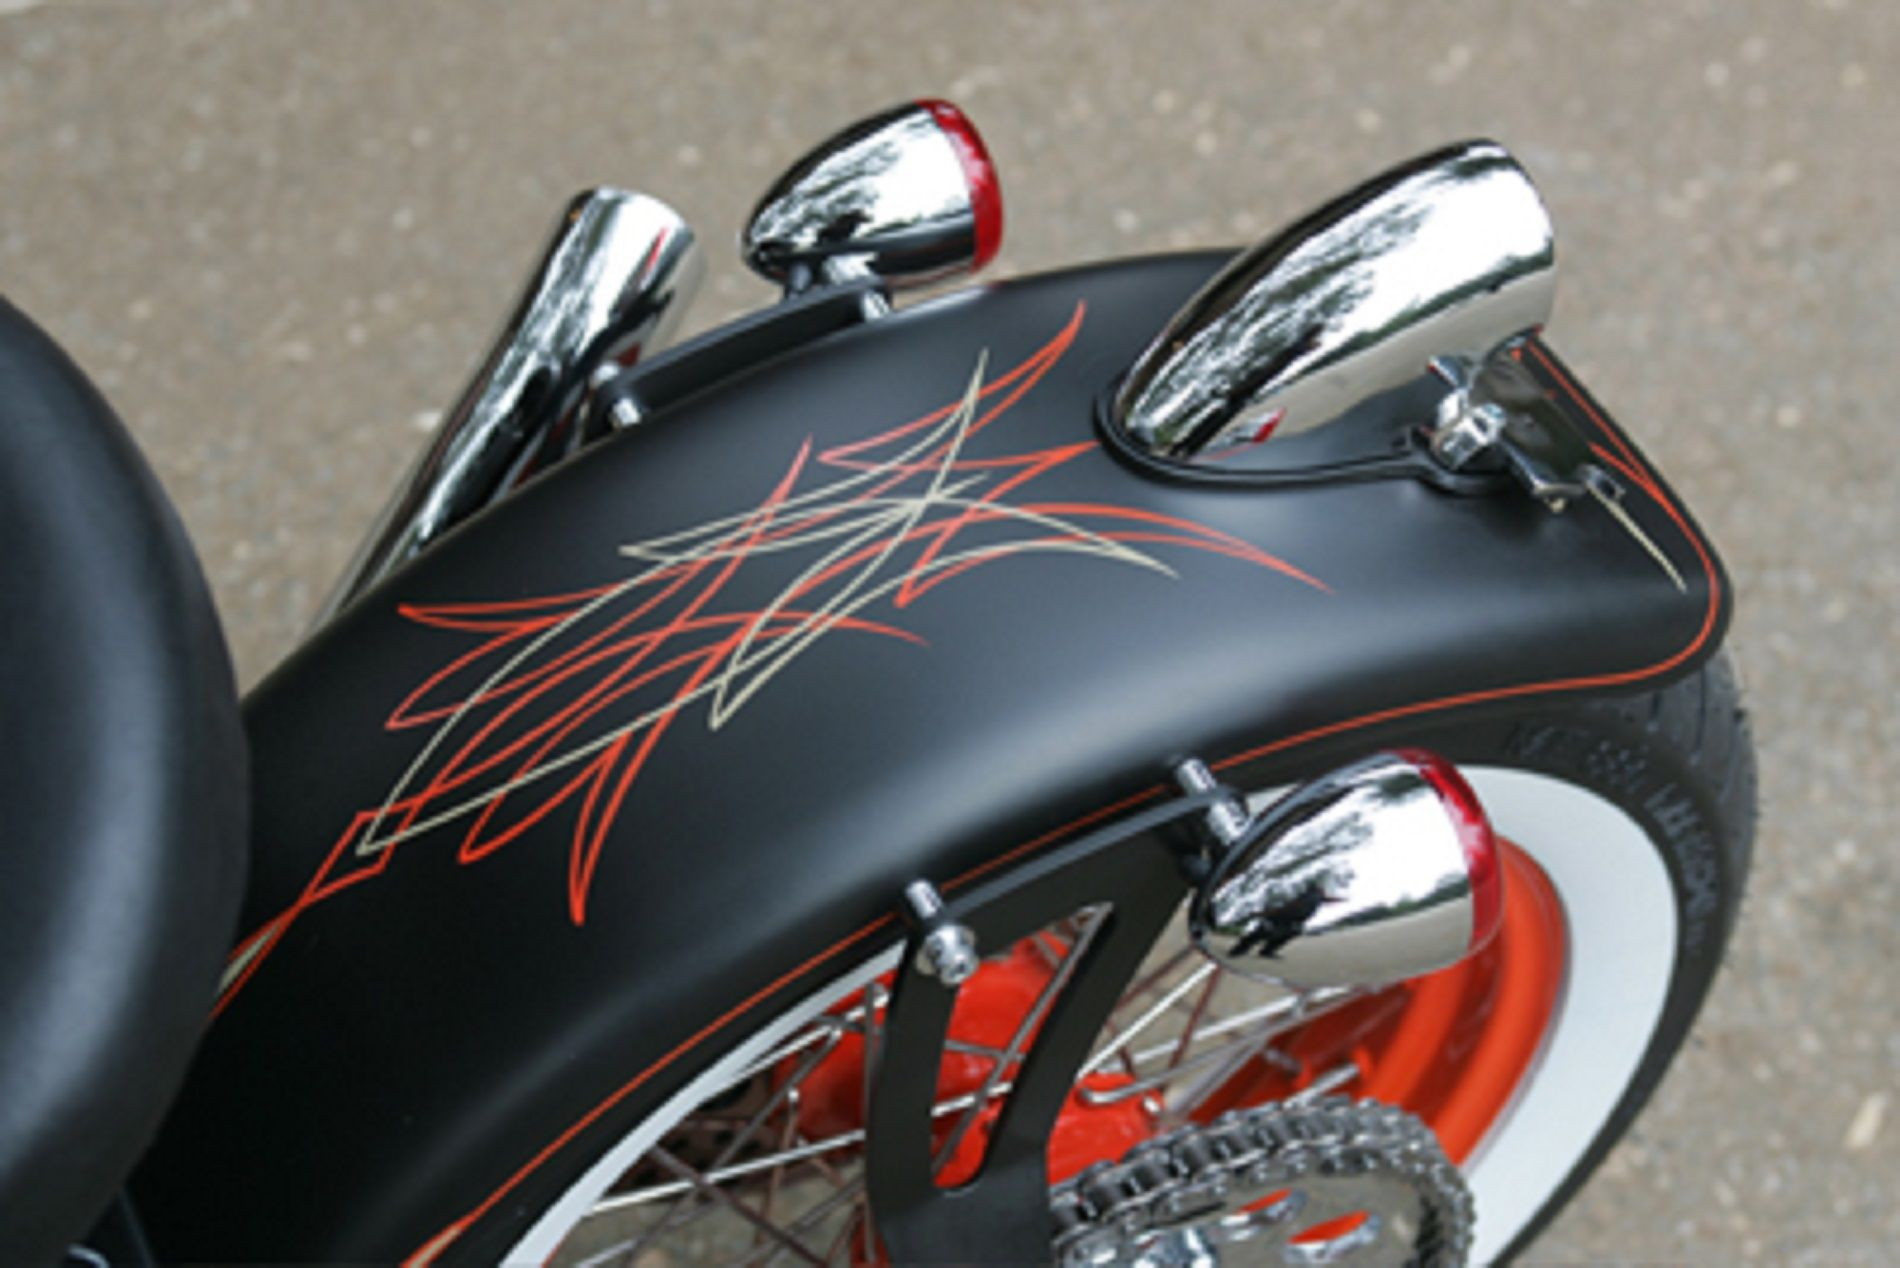 AMC American Motorcycle Company Established Http - Vinyl stripes for motorcyclesmetric cruiser motorcycle graphics decals roadstar fury vstar road